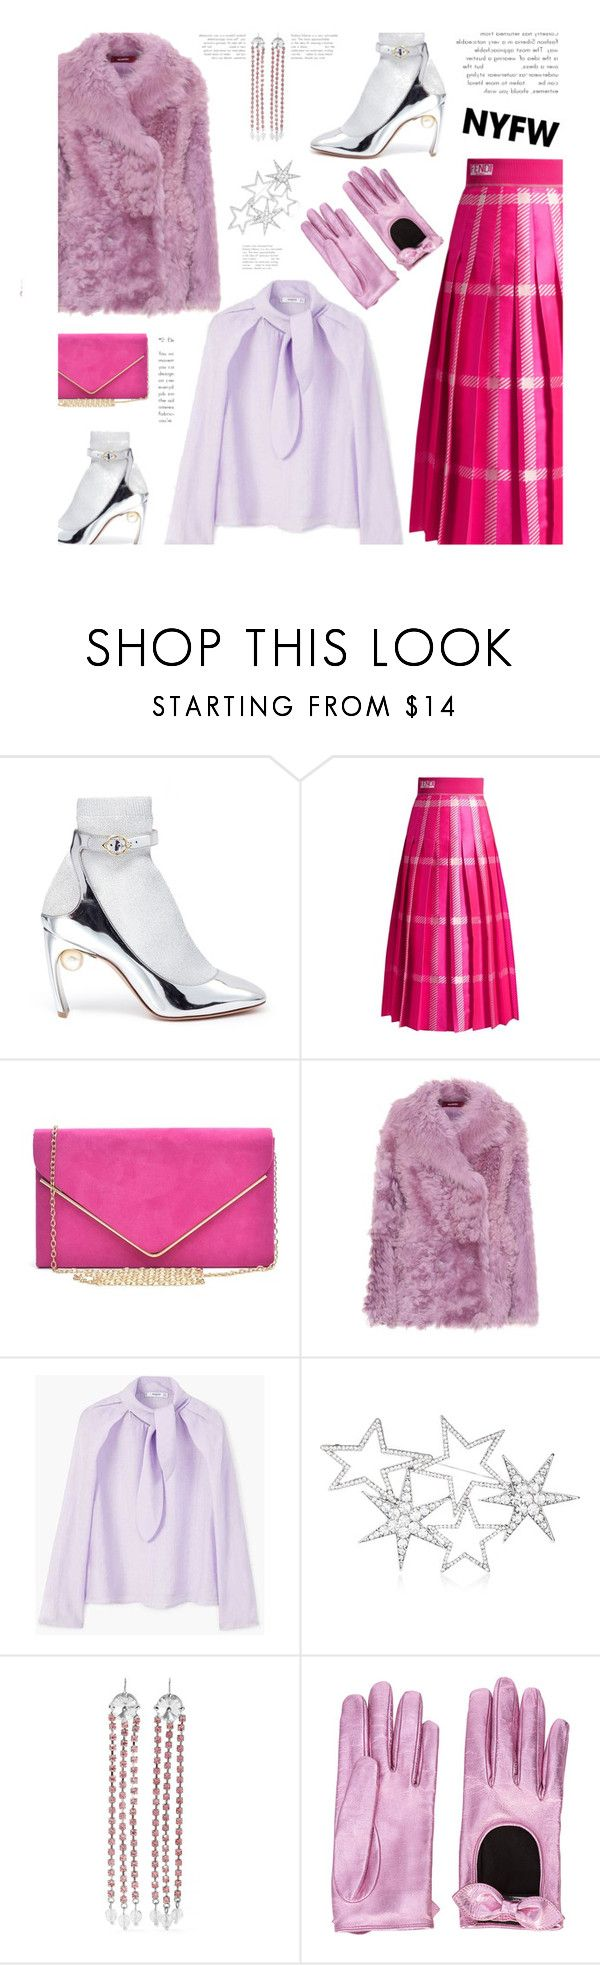 """""""NYFW Trend Spotting: Hot Pink"""" by dianefantasy ❤ liked on Polyvore featuring Nicholas Kirkwood, Fendi, Sies Marjan, MANGO, Love Rocks, Miu Miu, Gucci, contestentry and NYFWHotPink"""